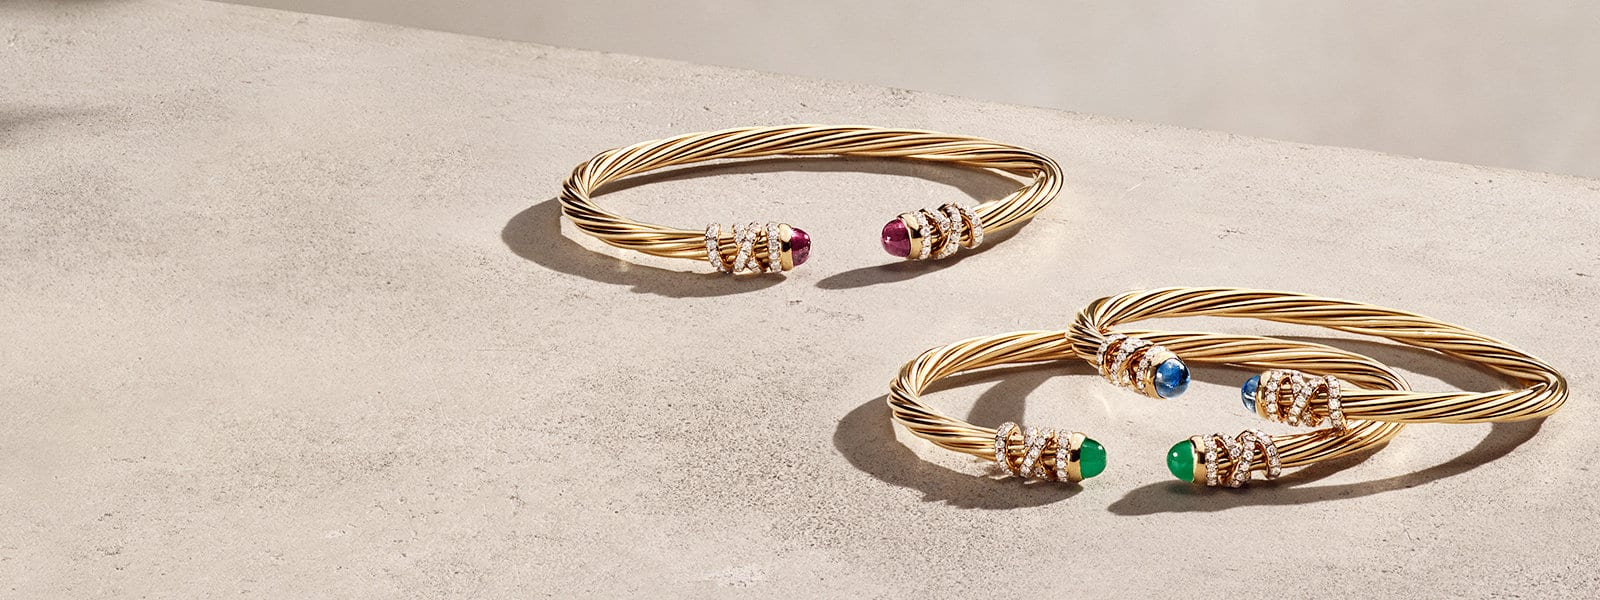 Three David Yurman Helena bracelets in 18K yellow gold with pavé diamond strands wrapped near the ruby, emerald and light blue sapphire end caps—all scattered on a light pink textured stone.